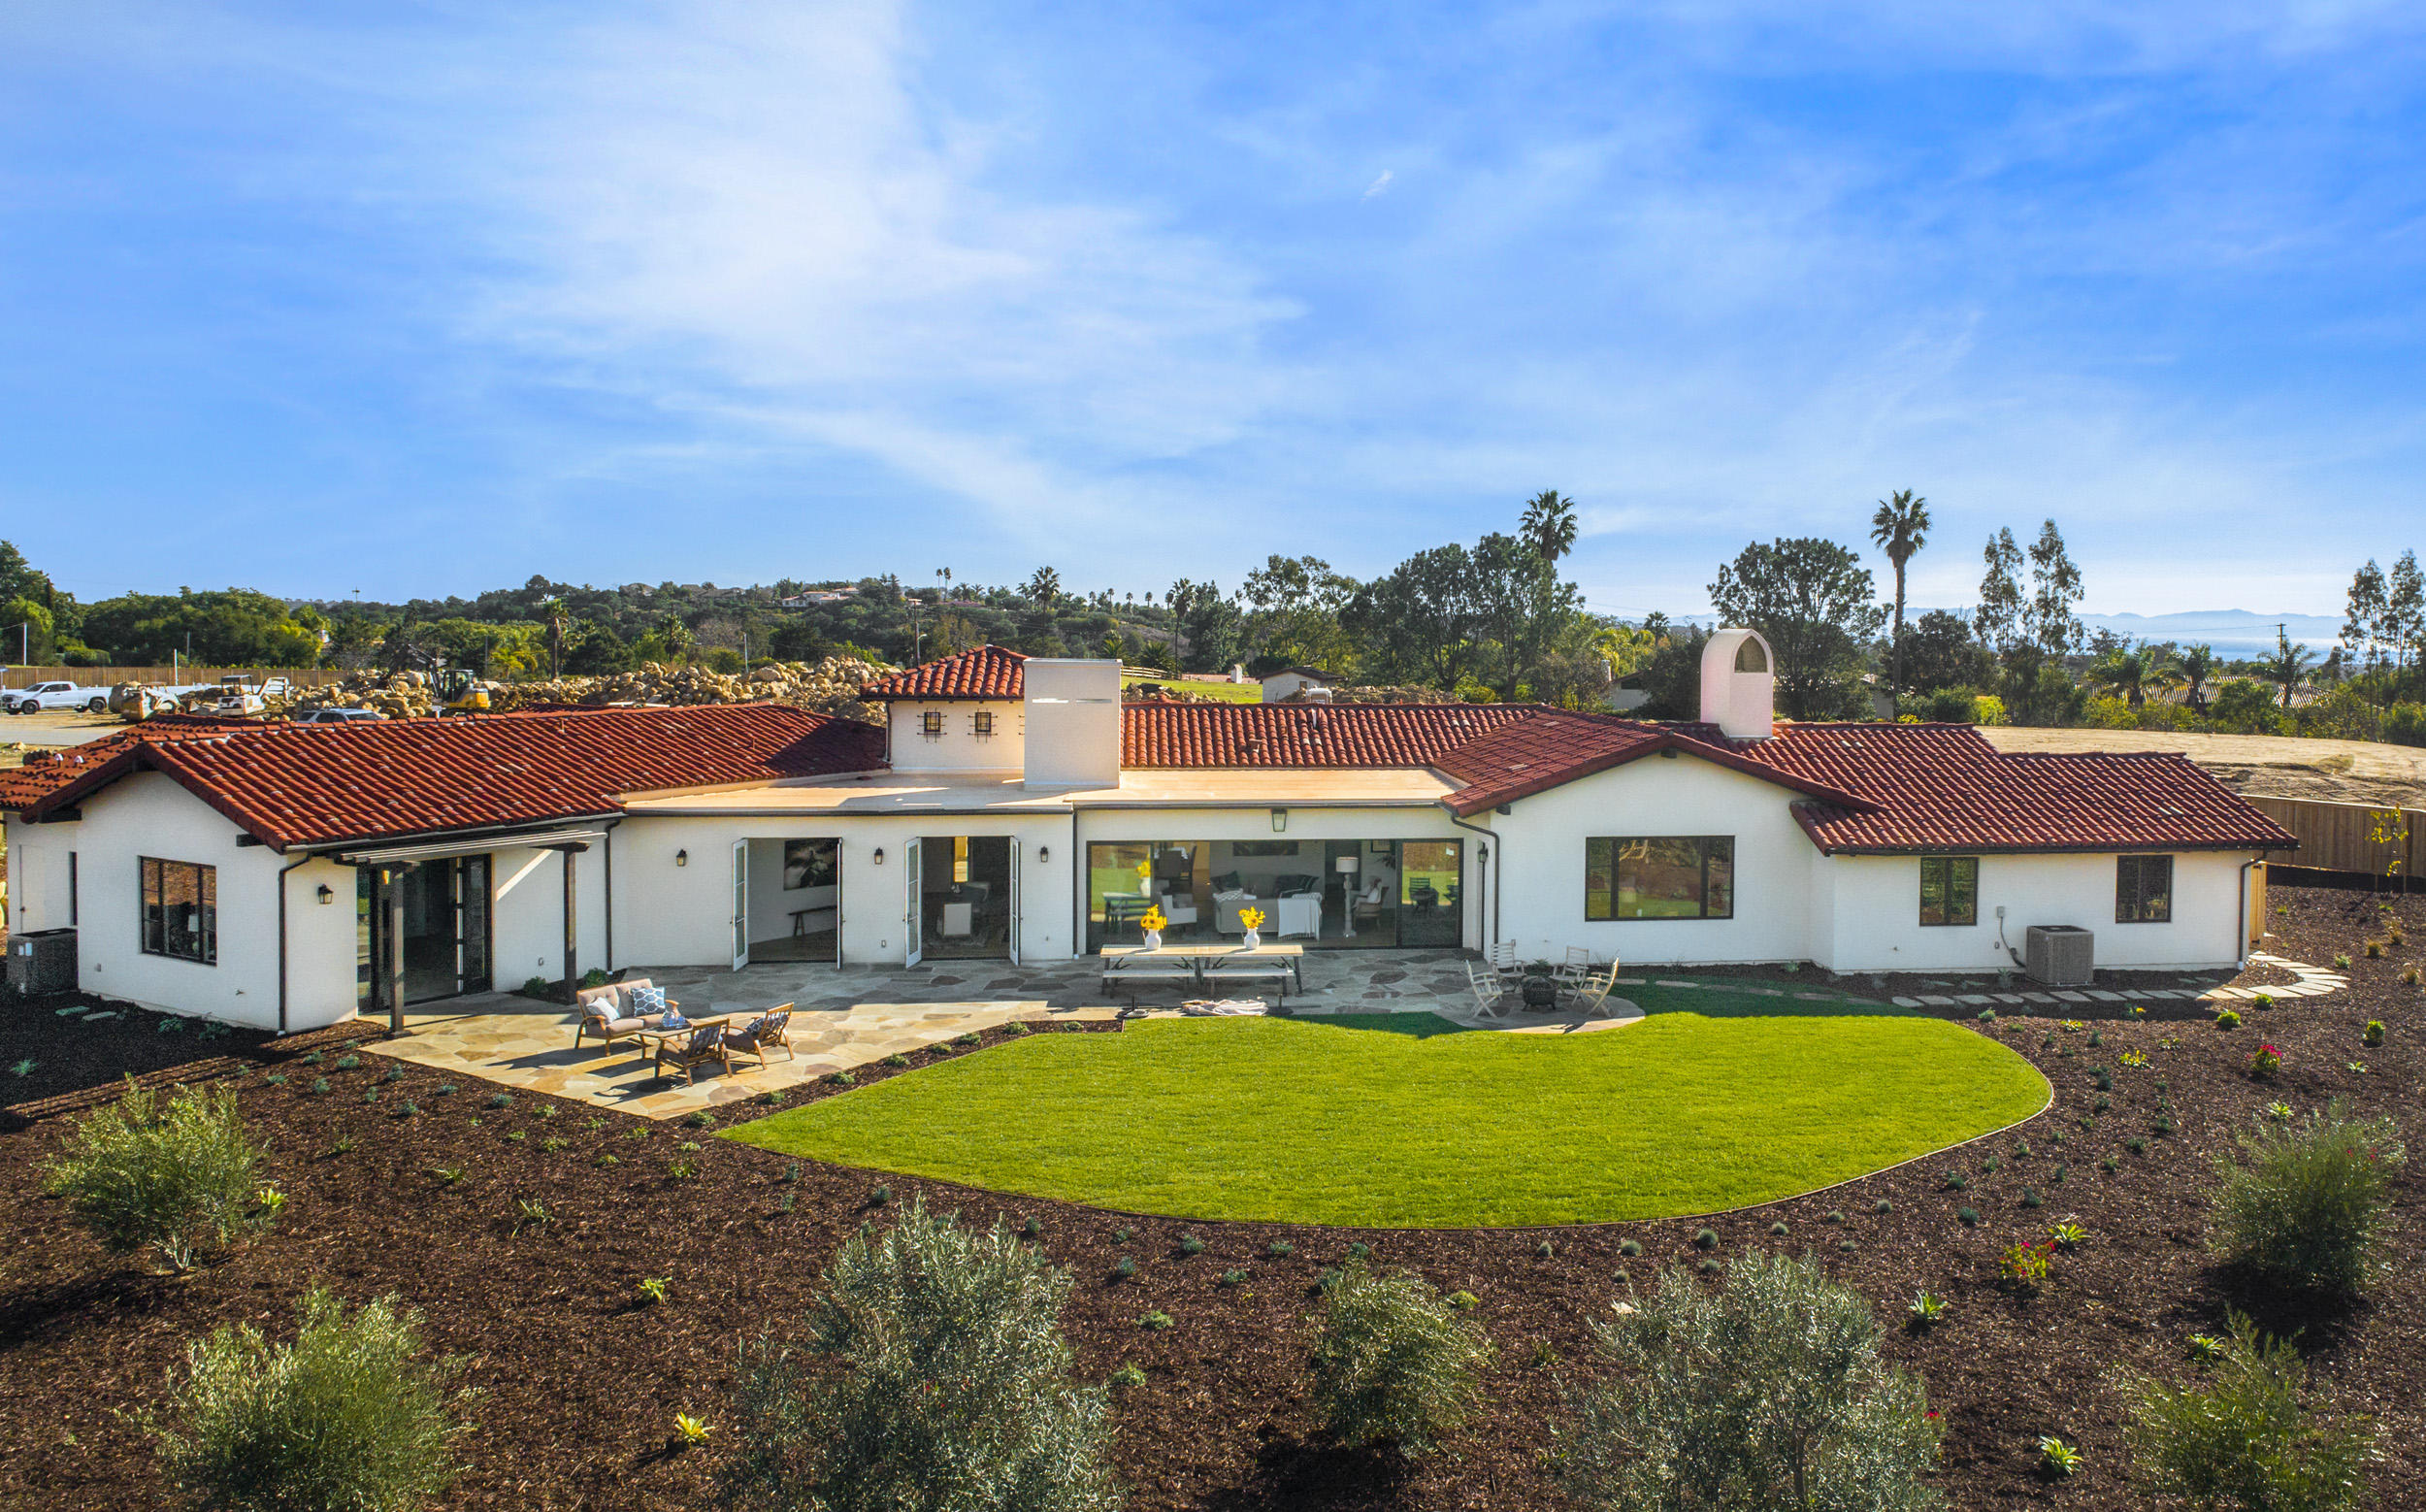 4730  Boulder Ridge Rd, Santa Barbara, California